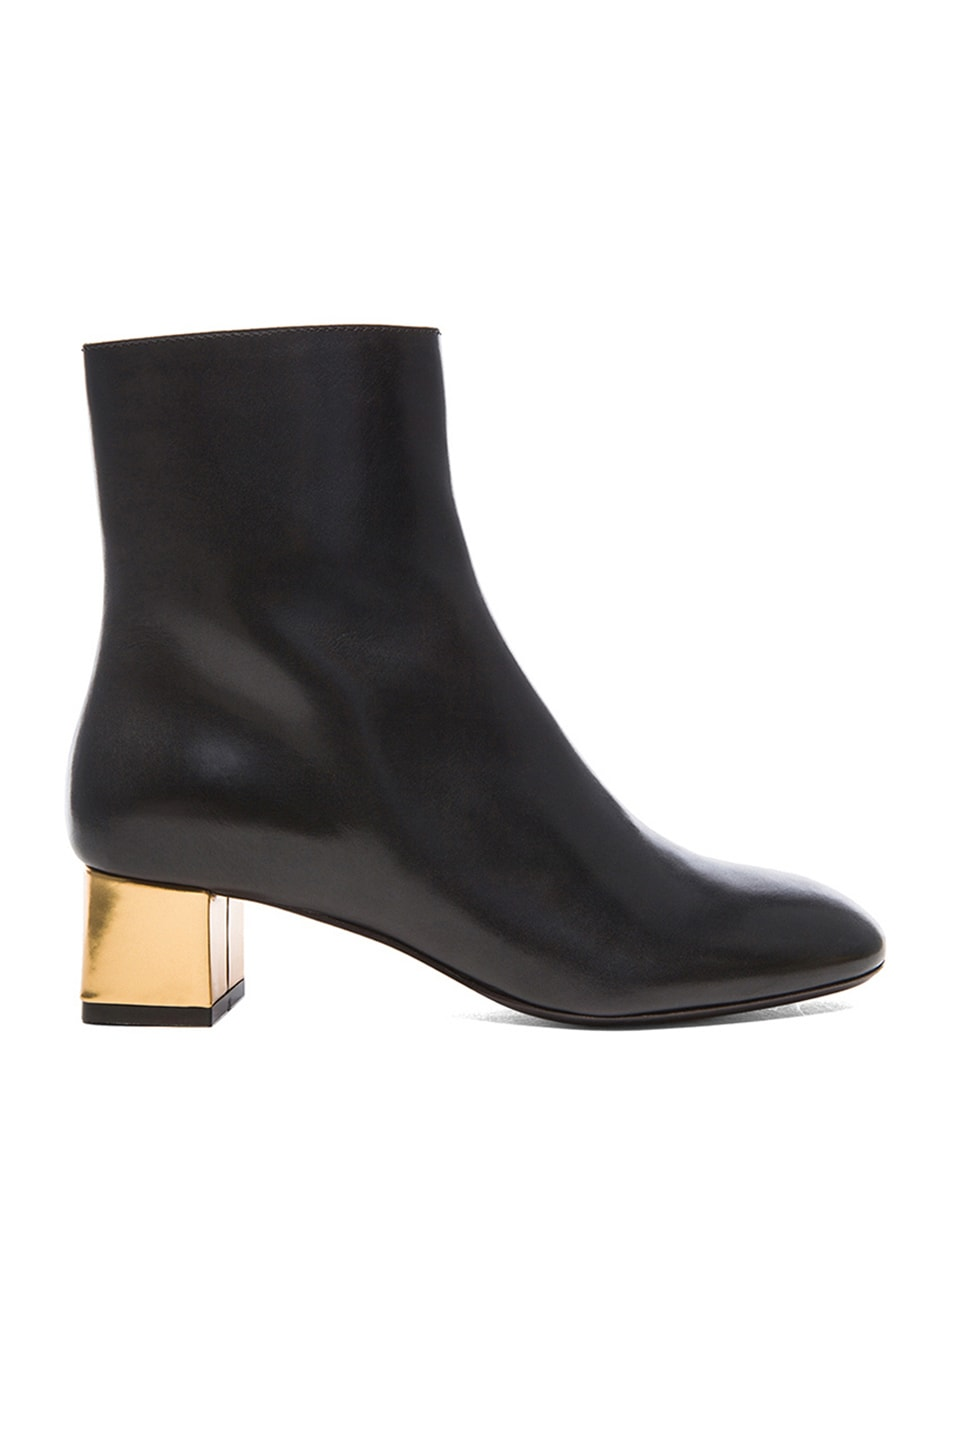 Image 1 of Marni Calfskin Leather Ankle Booties in Coal